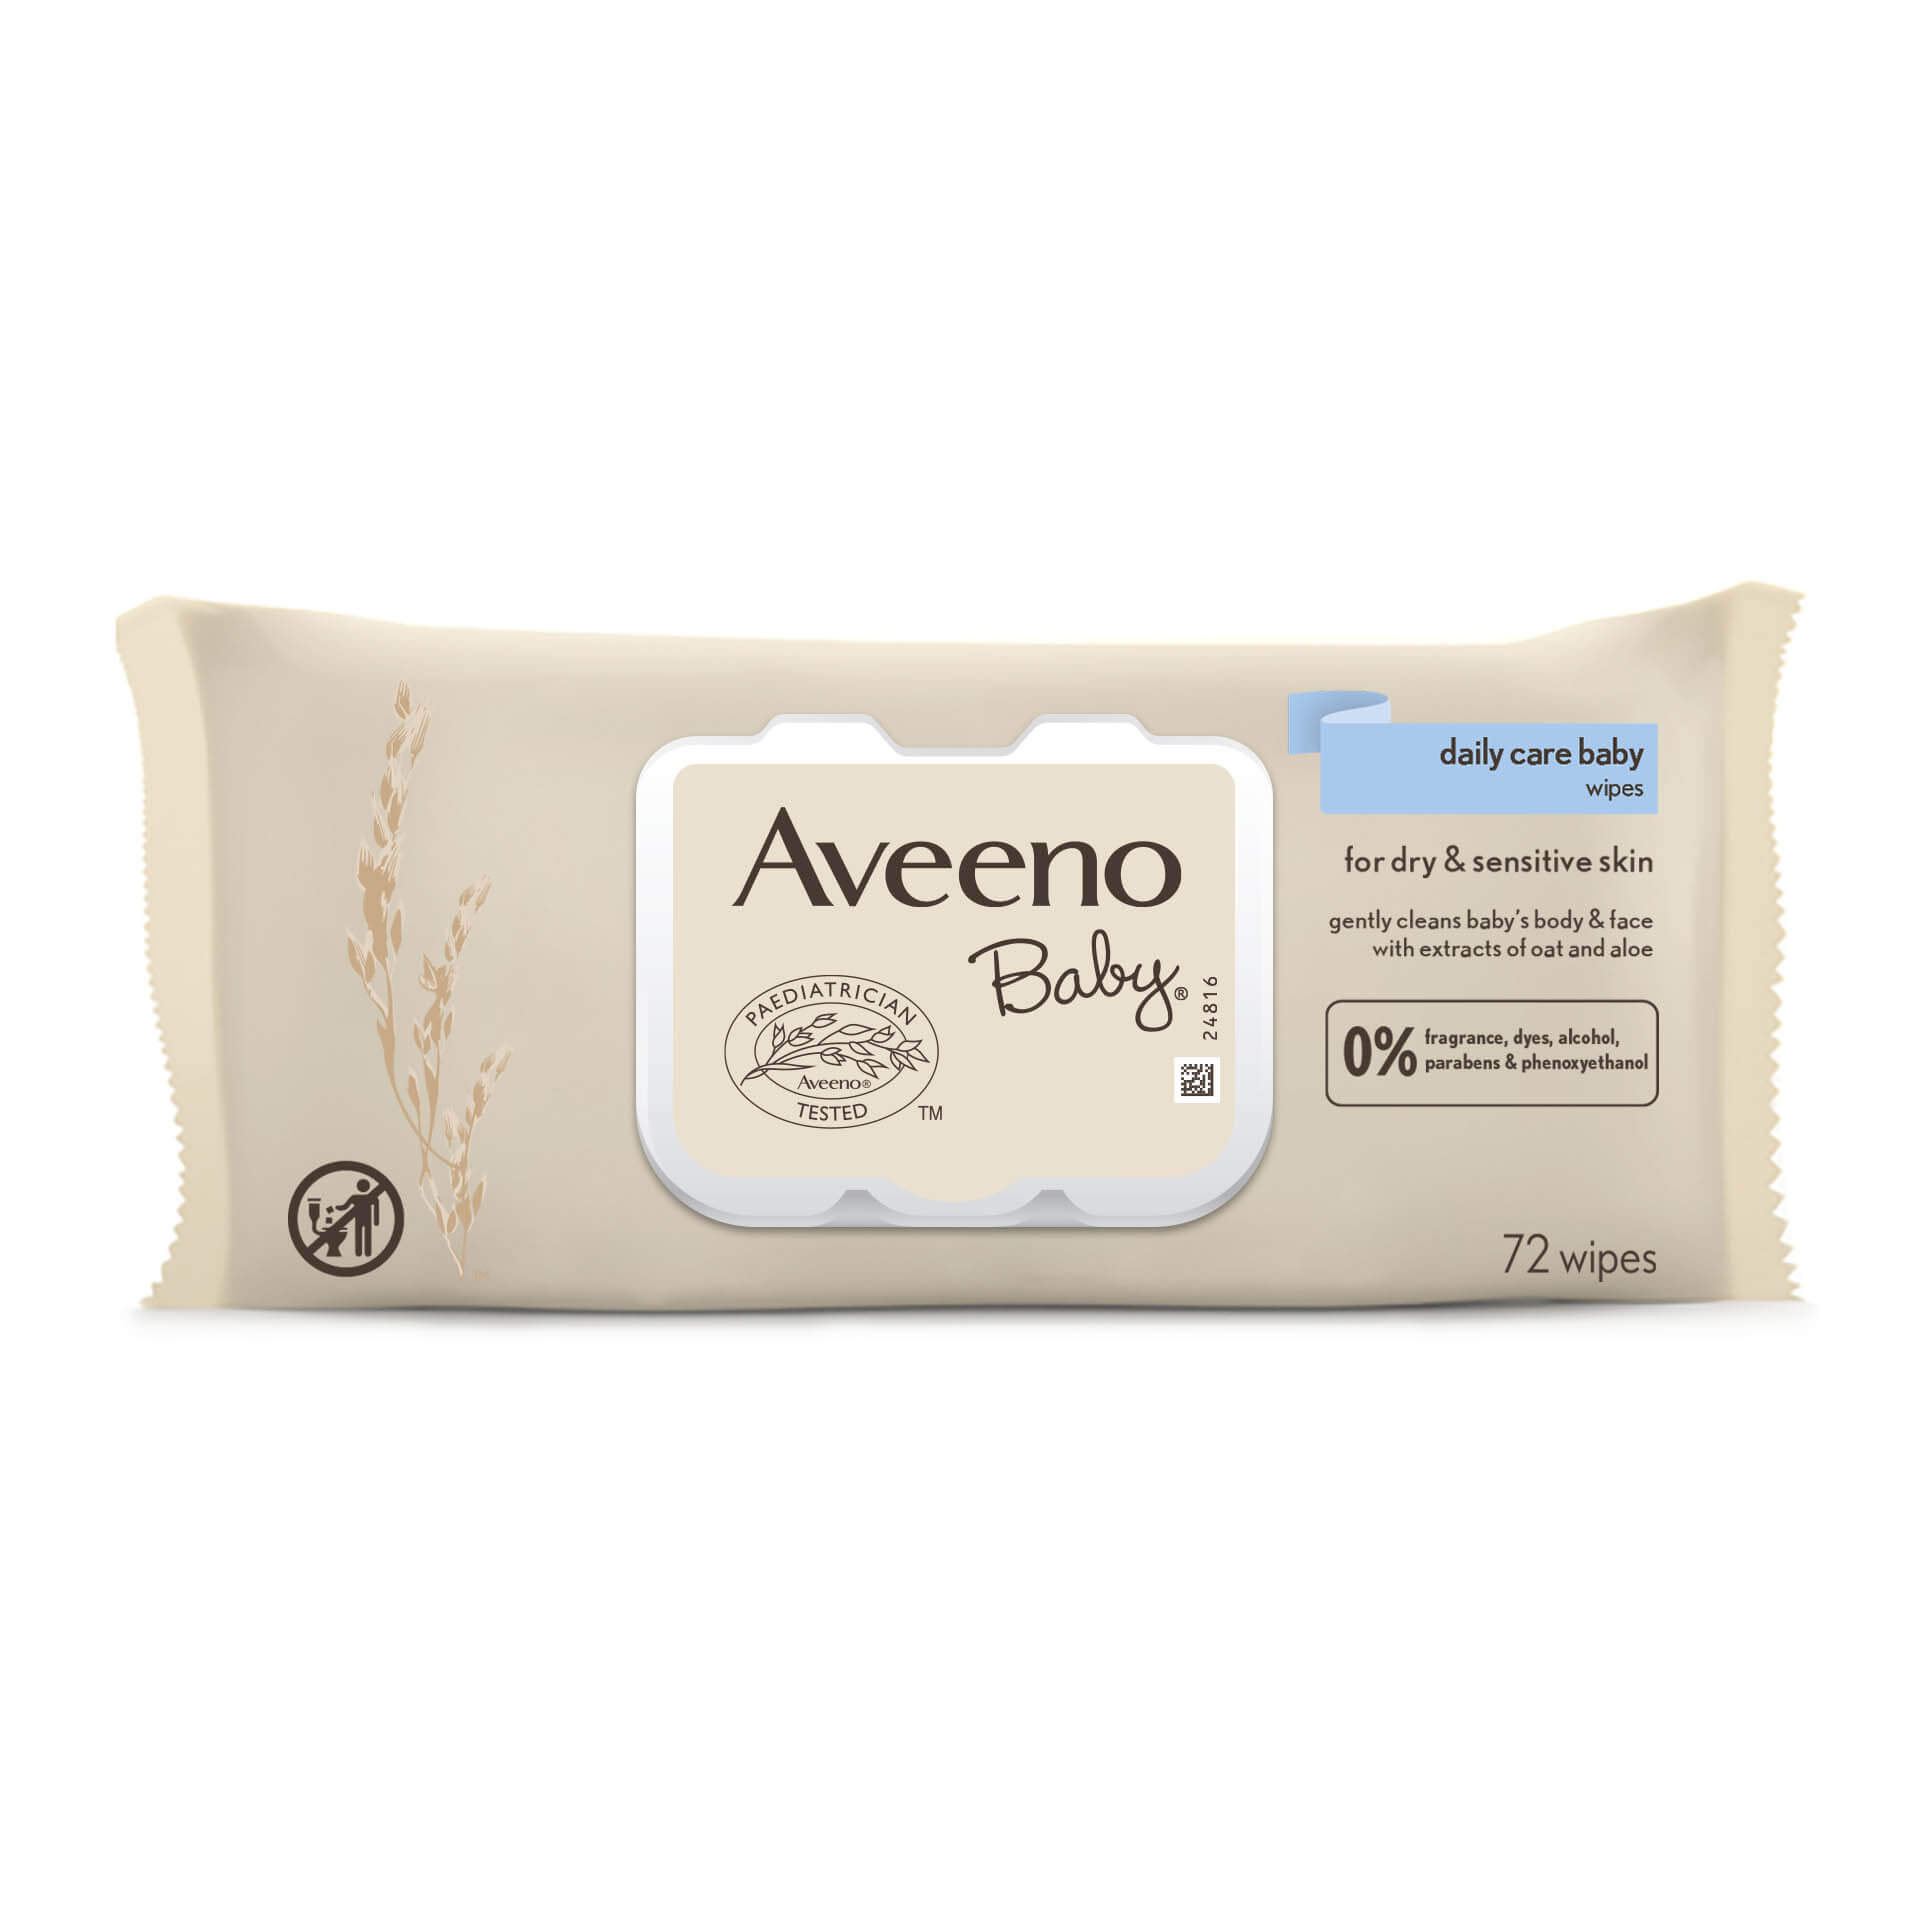 Aveeno Baby Daily Care Baby Wipes